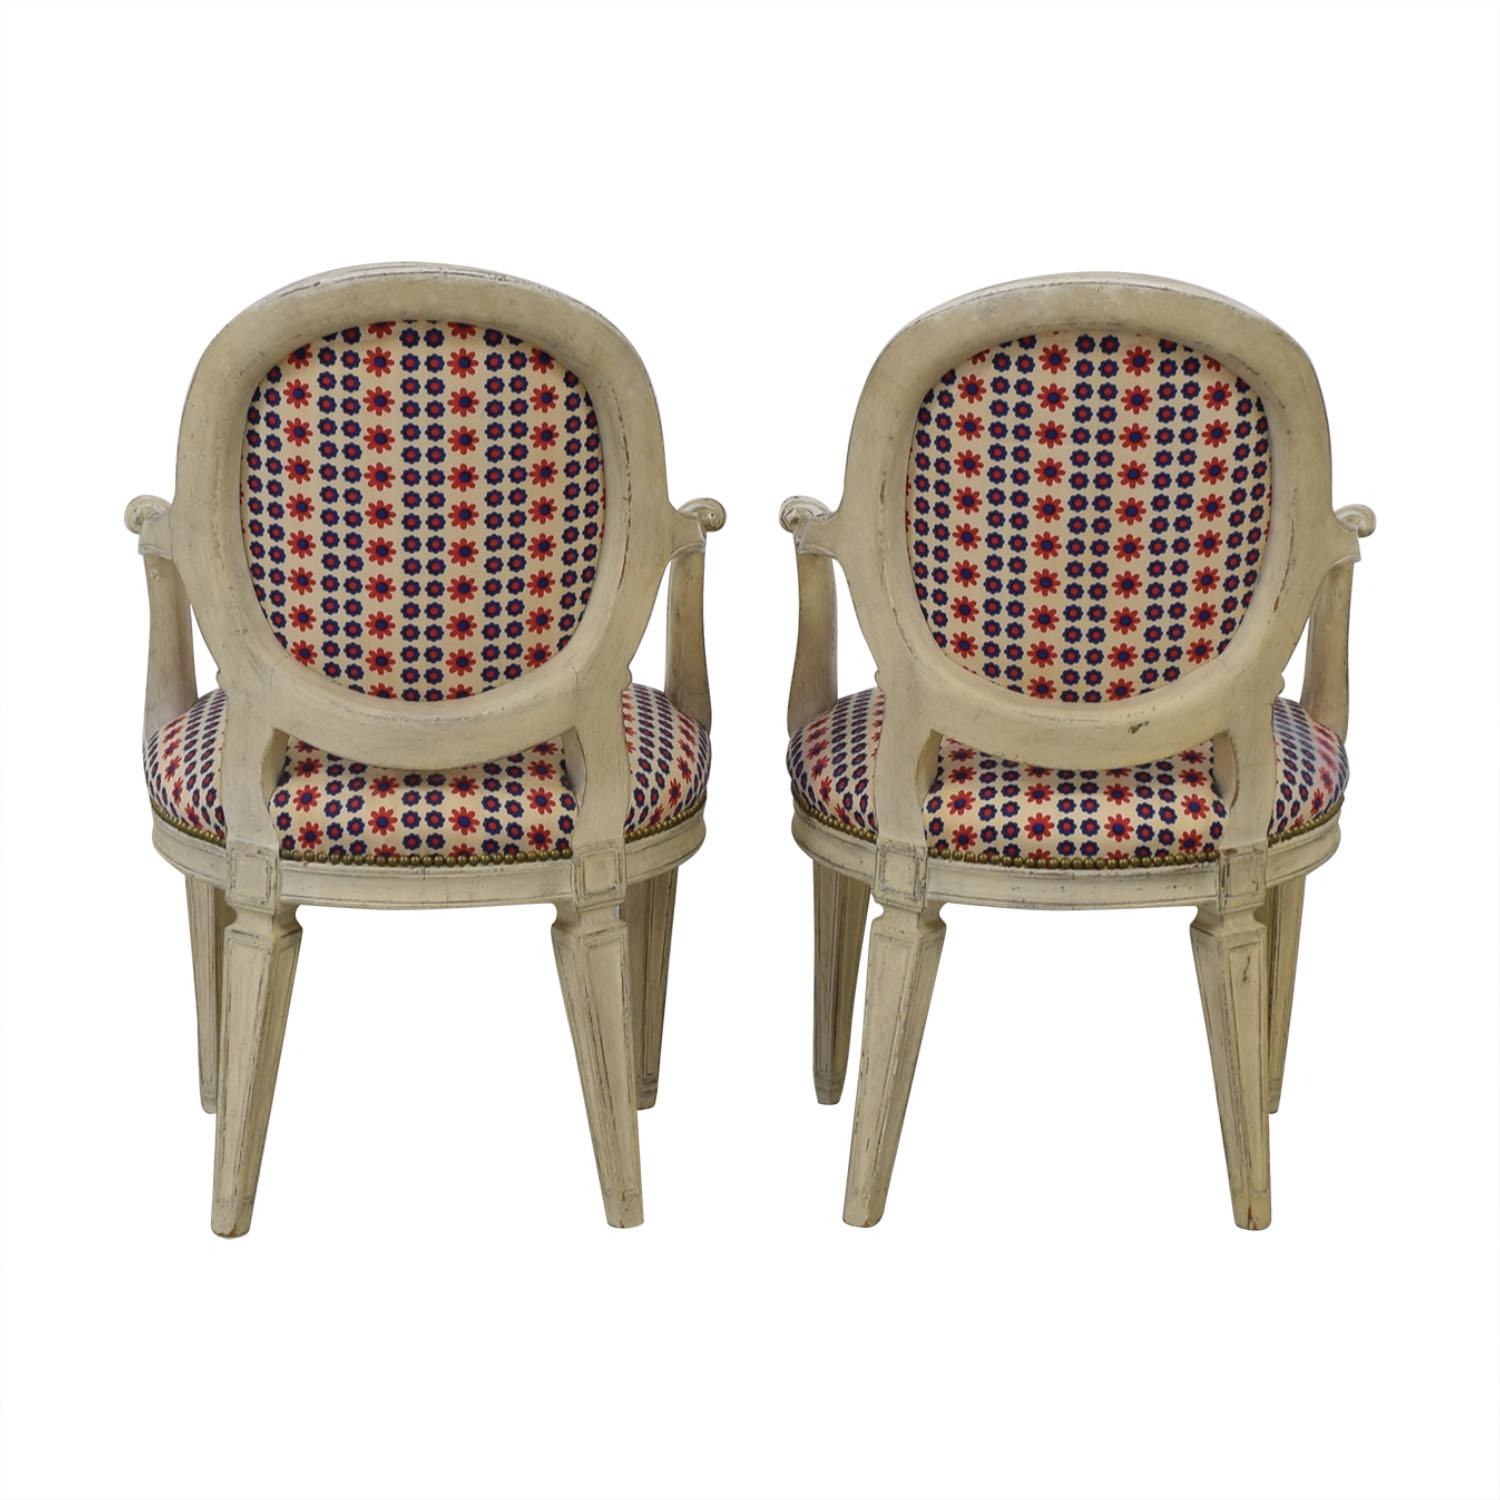 French Upholstered Chairs second hand